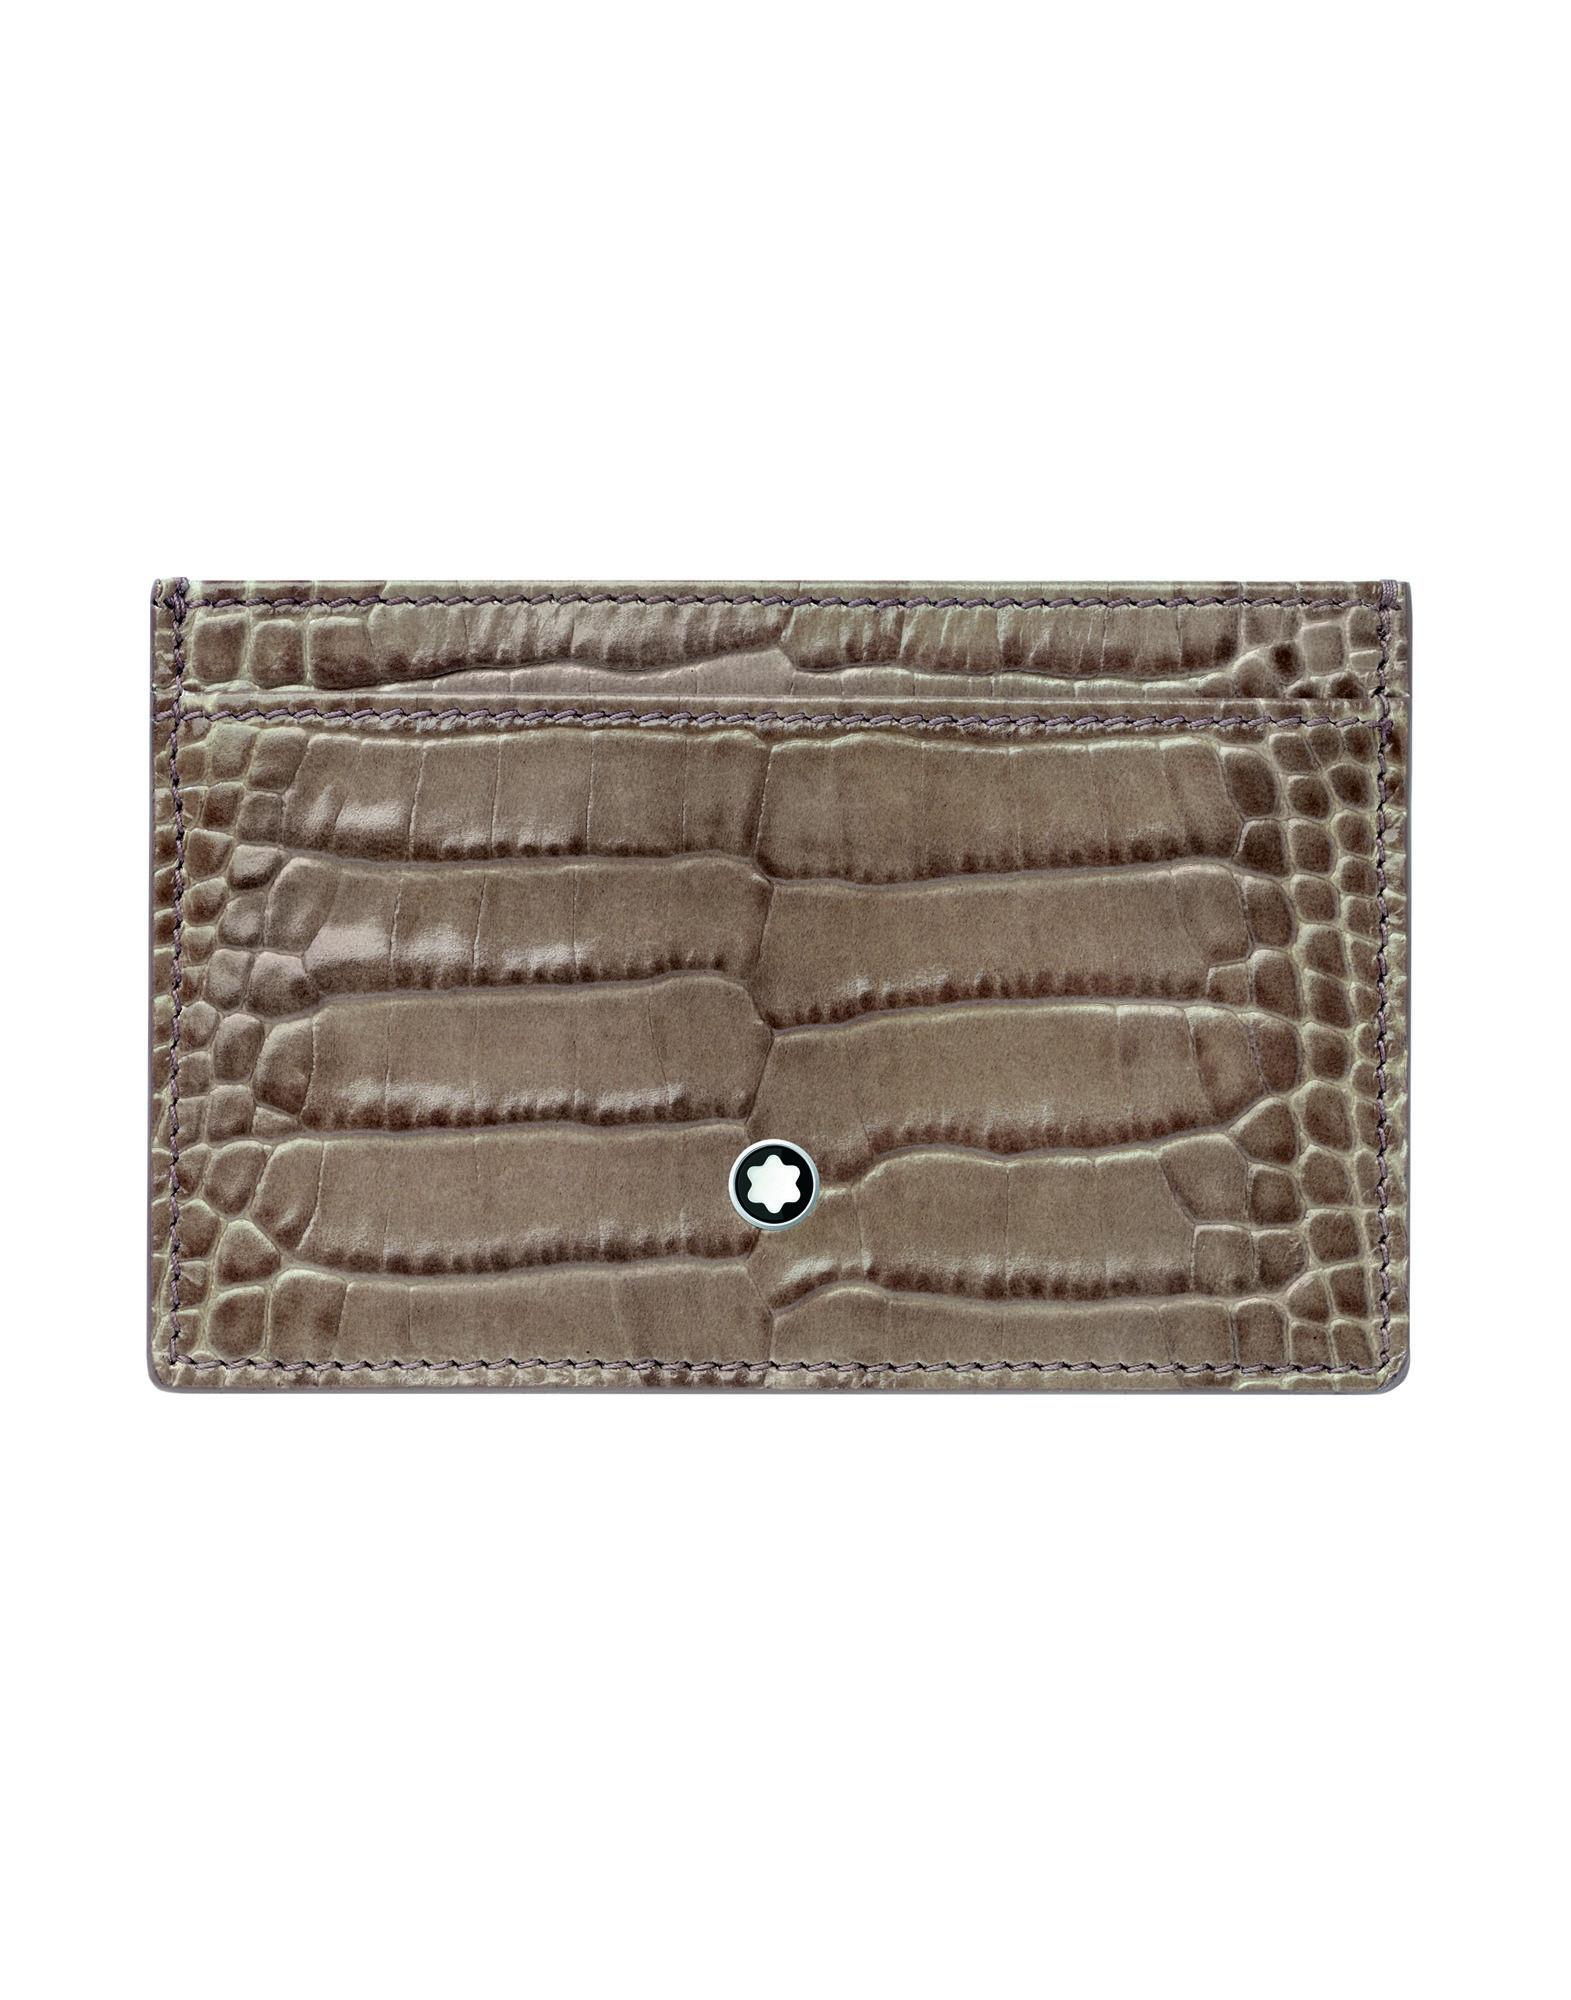 Small Leather Goods - Document holders Christopher Kane A8pkDTy